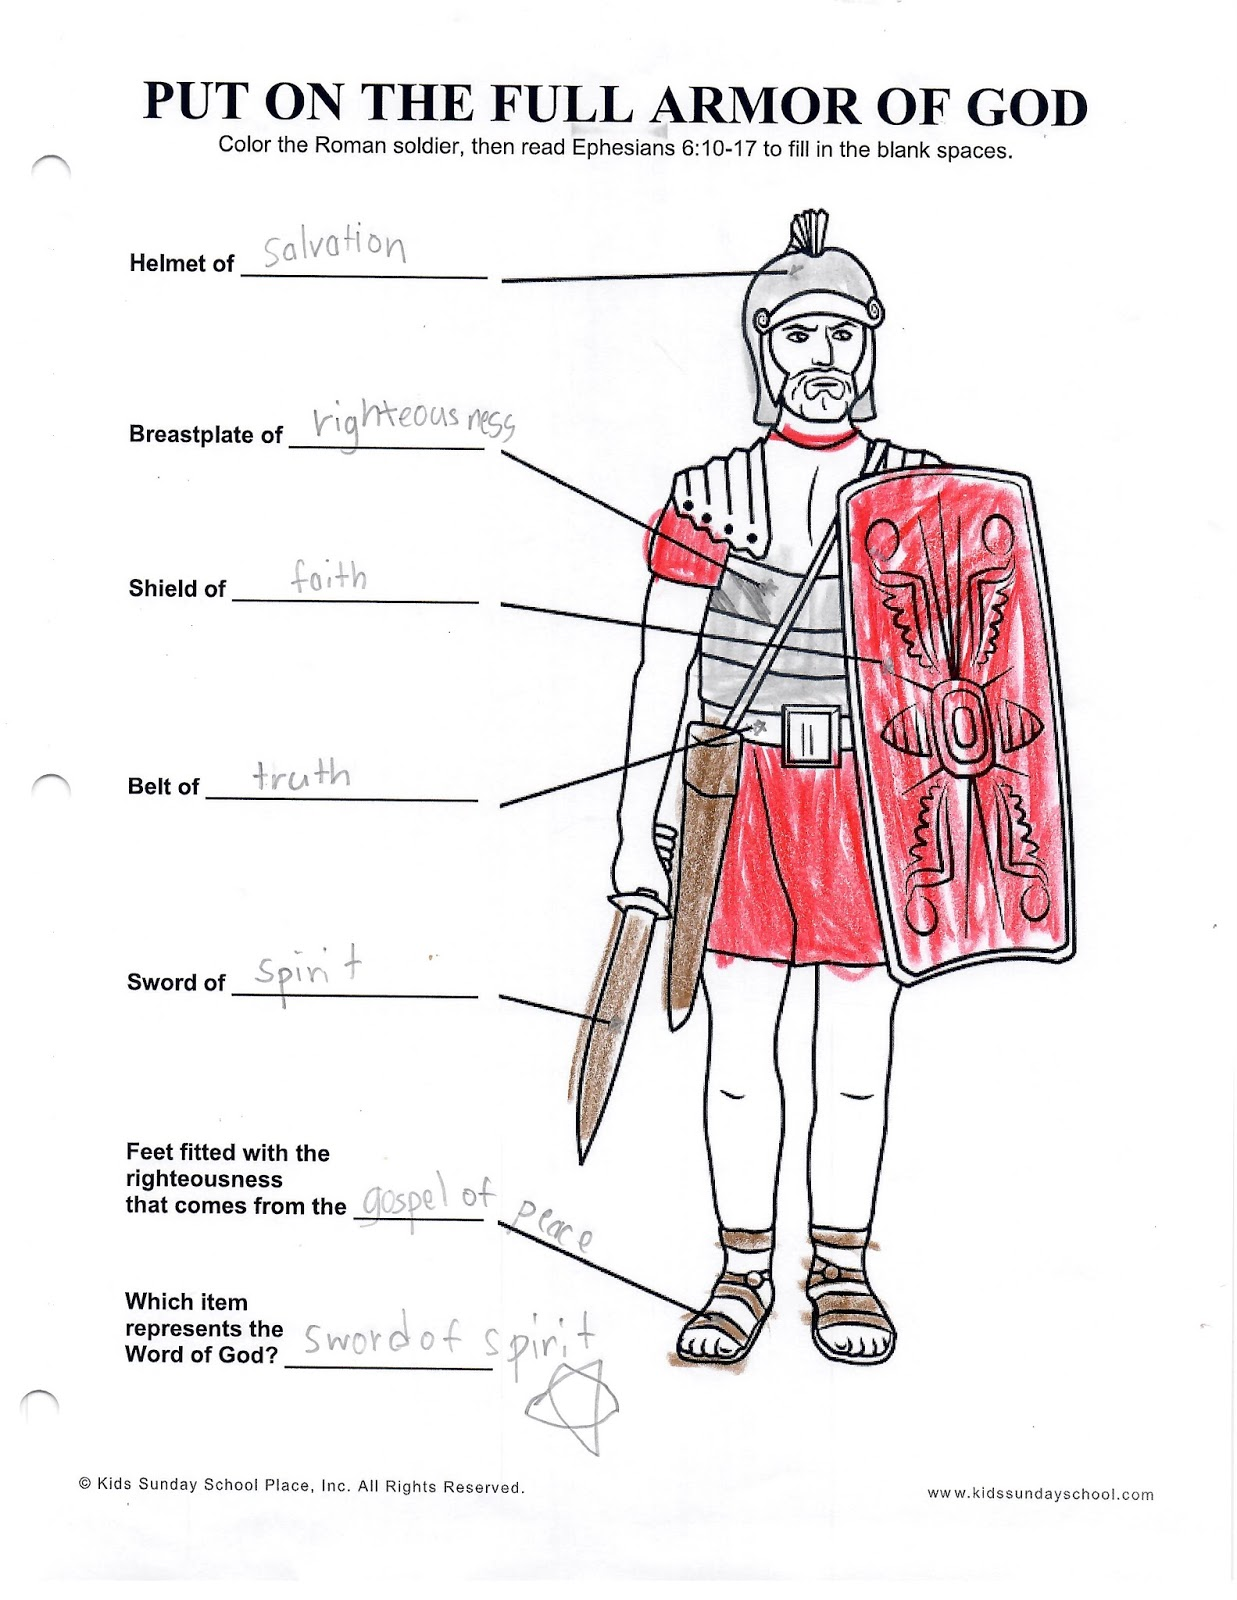 Home Su Cool 1st Grade Rome To Reformation Week 8 Roman Sol R Skin Germanic Tribes